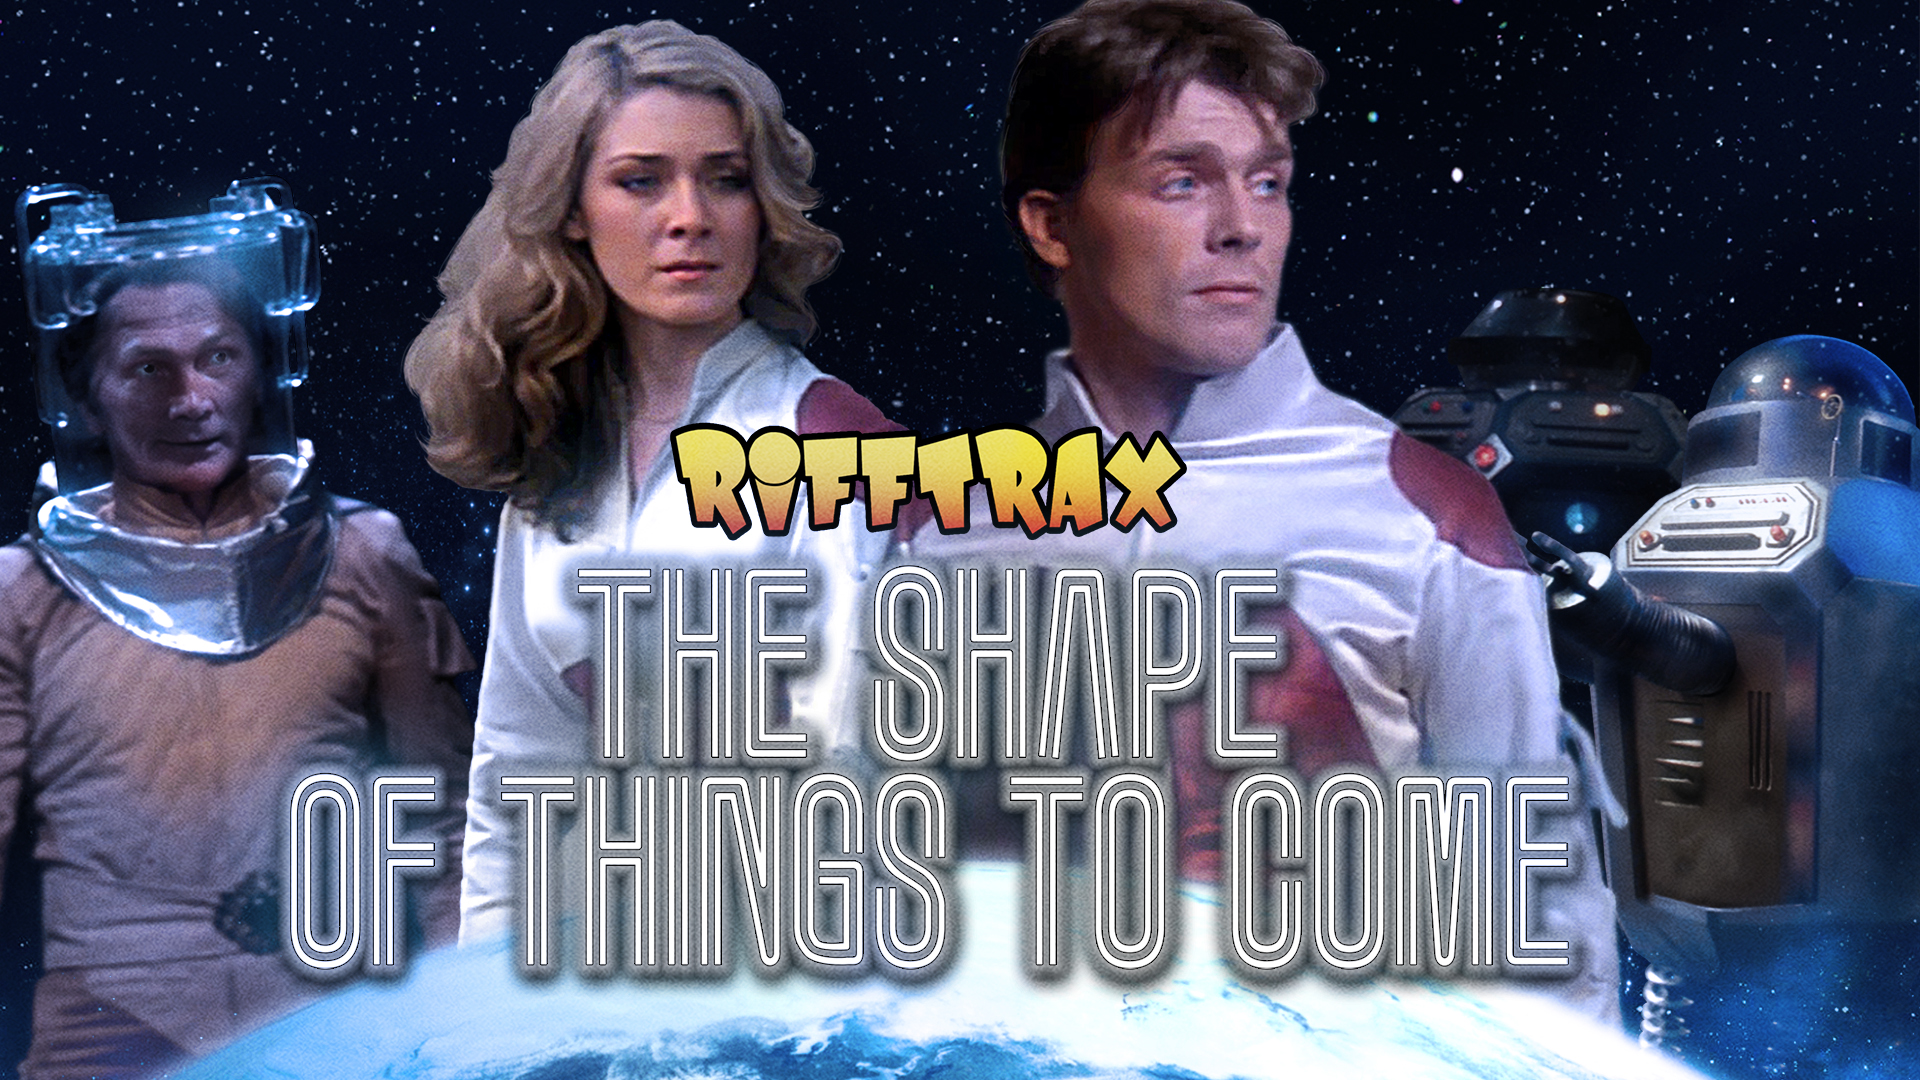 RiffTrax: The Shape of Things to Come